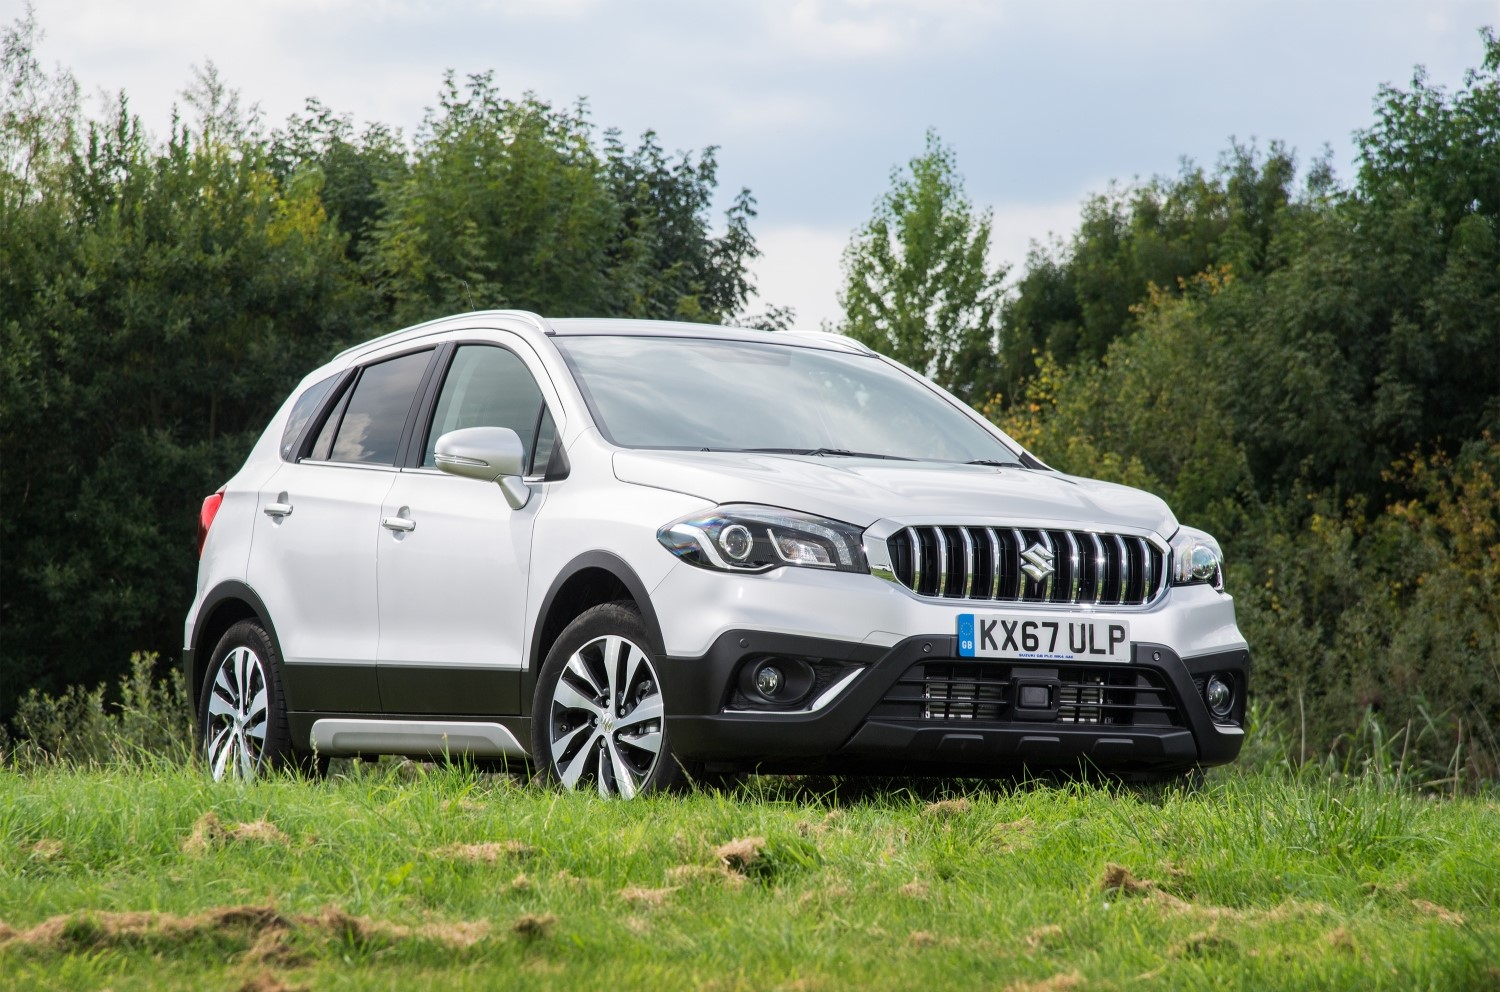 Car review: This Suzuki will only make its rivals Cross